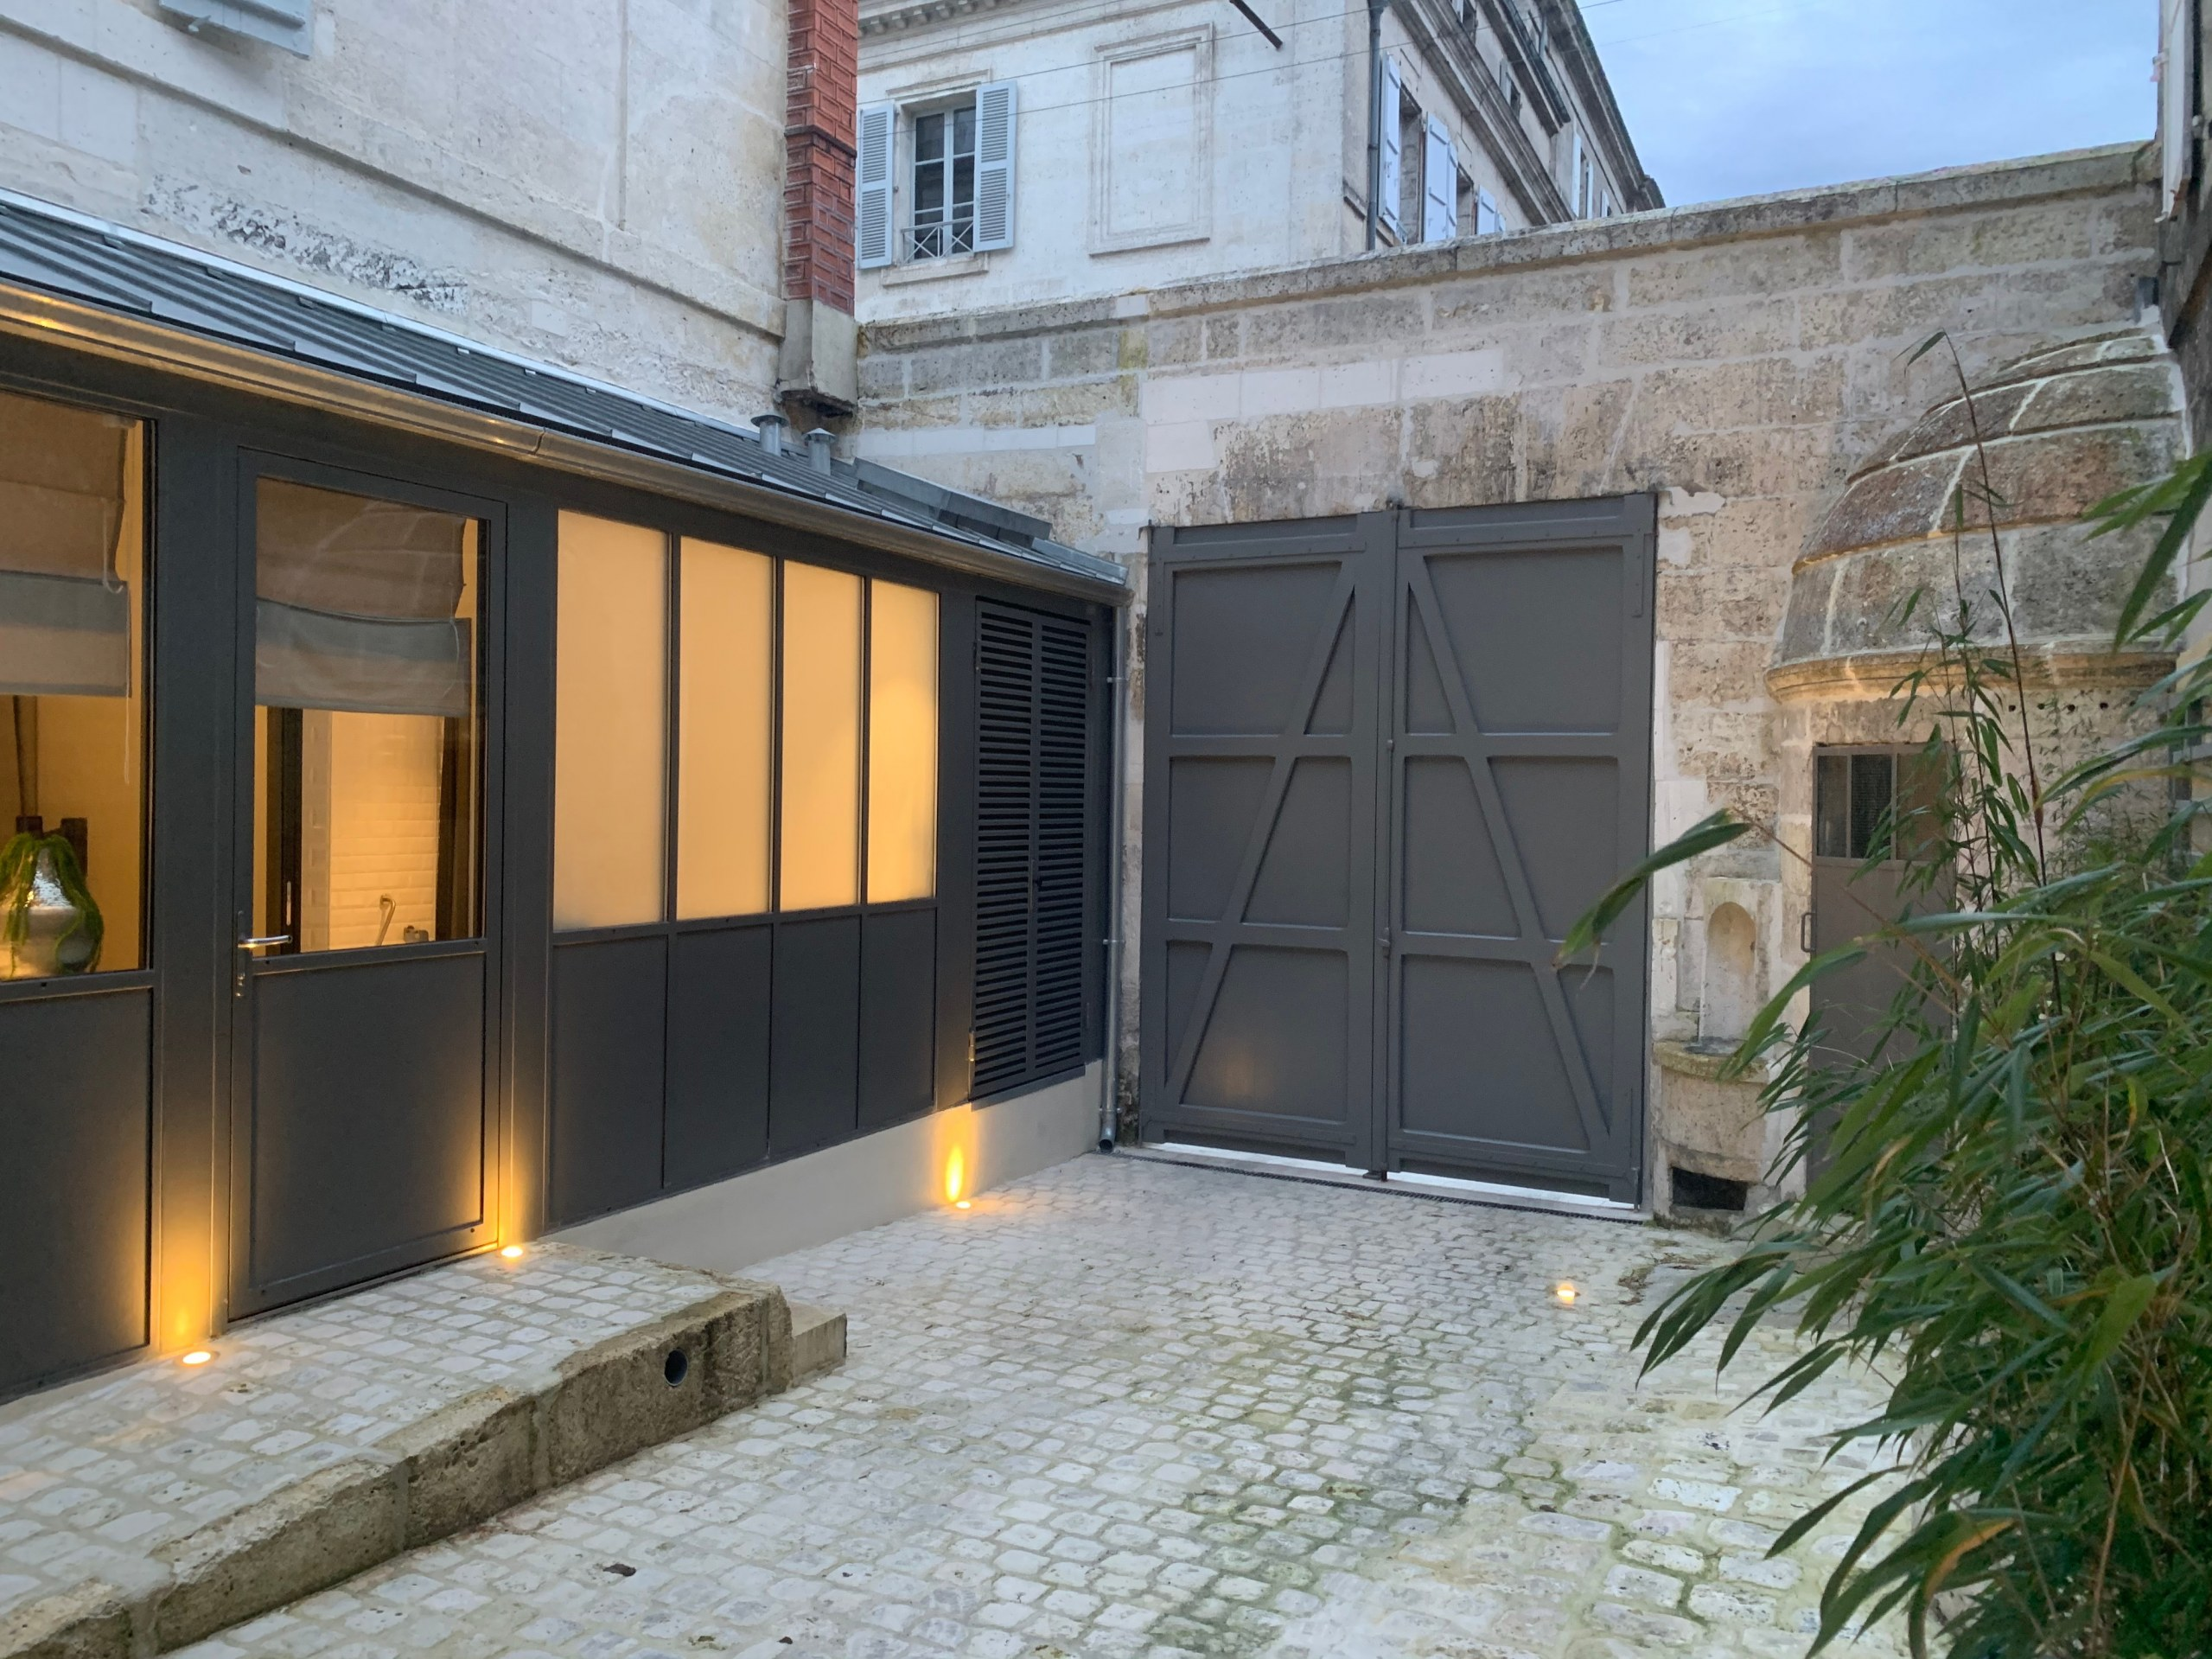 appart-hotel-angouleme studio 1 cour